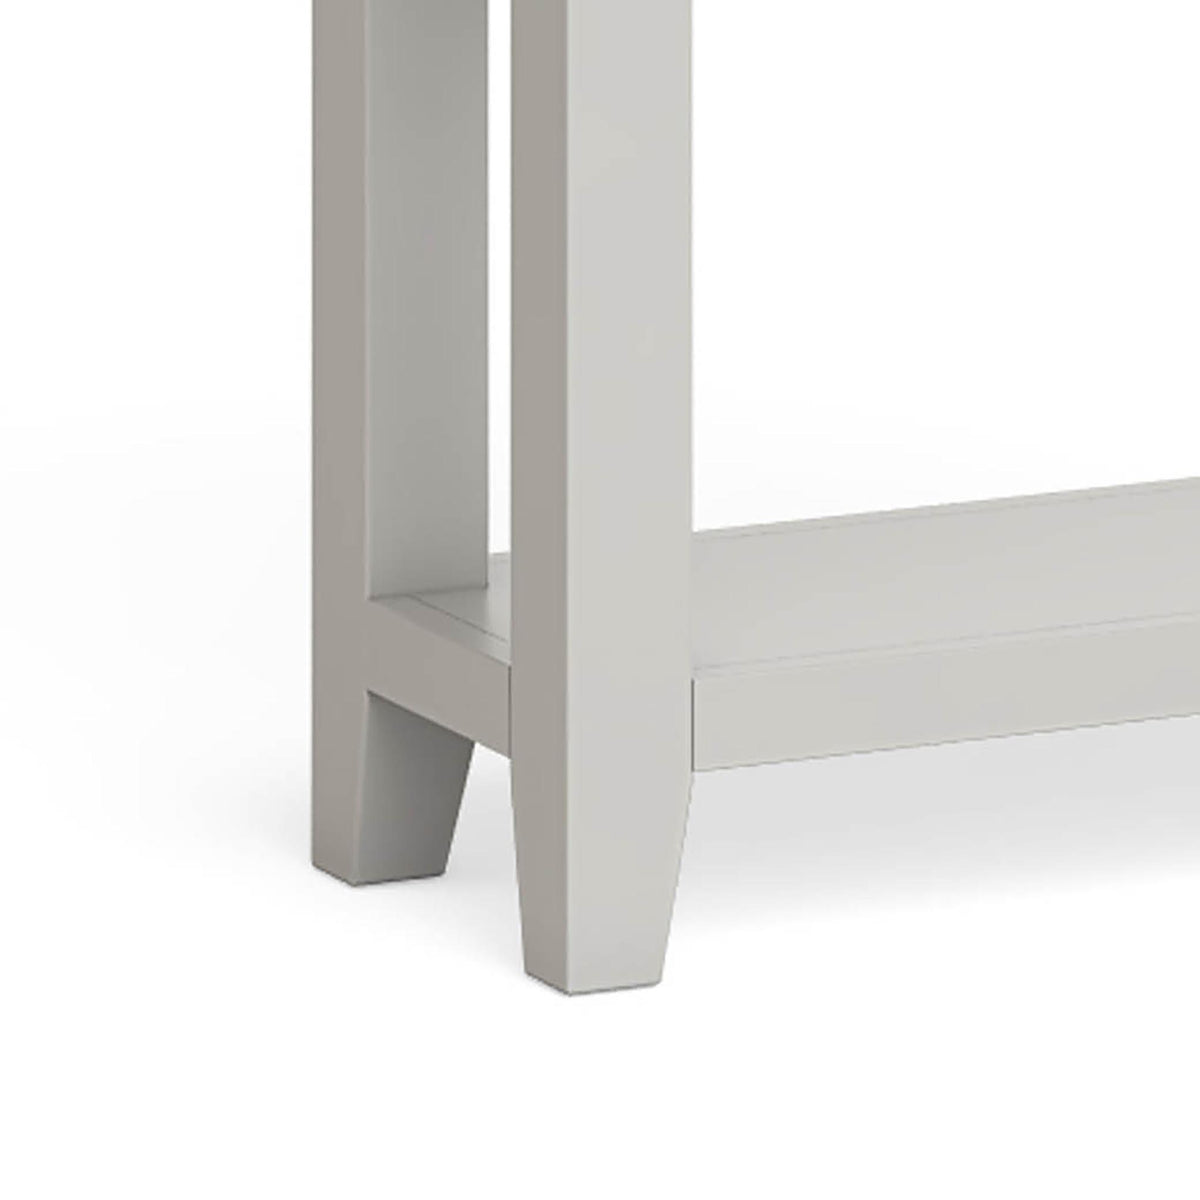 Lundy Grey Console Table - Close Up of Legs of Unit